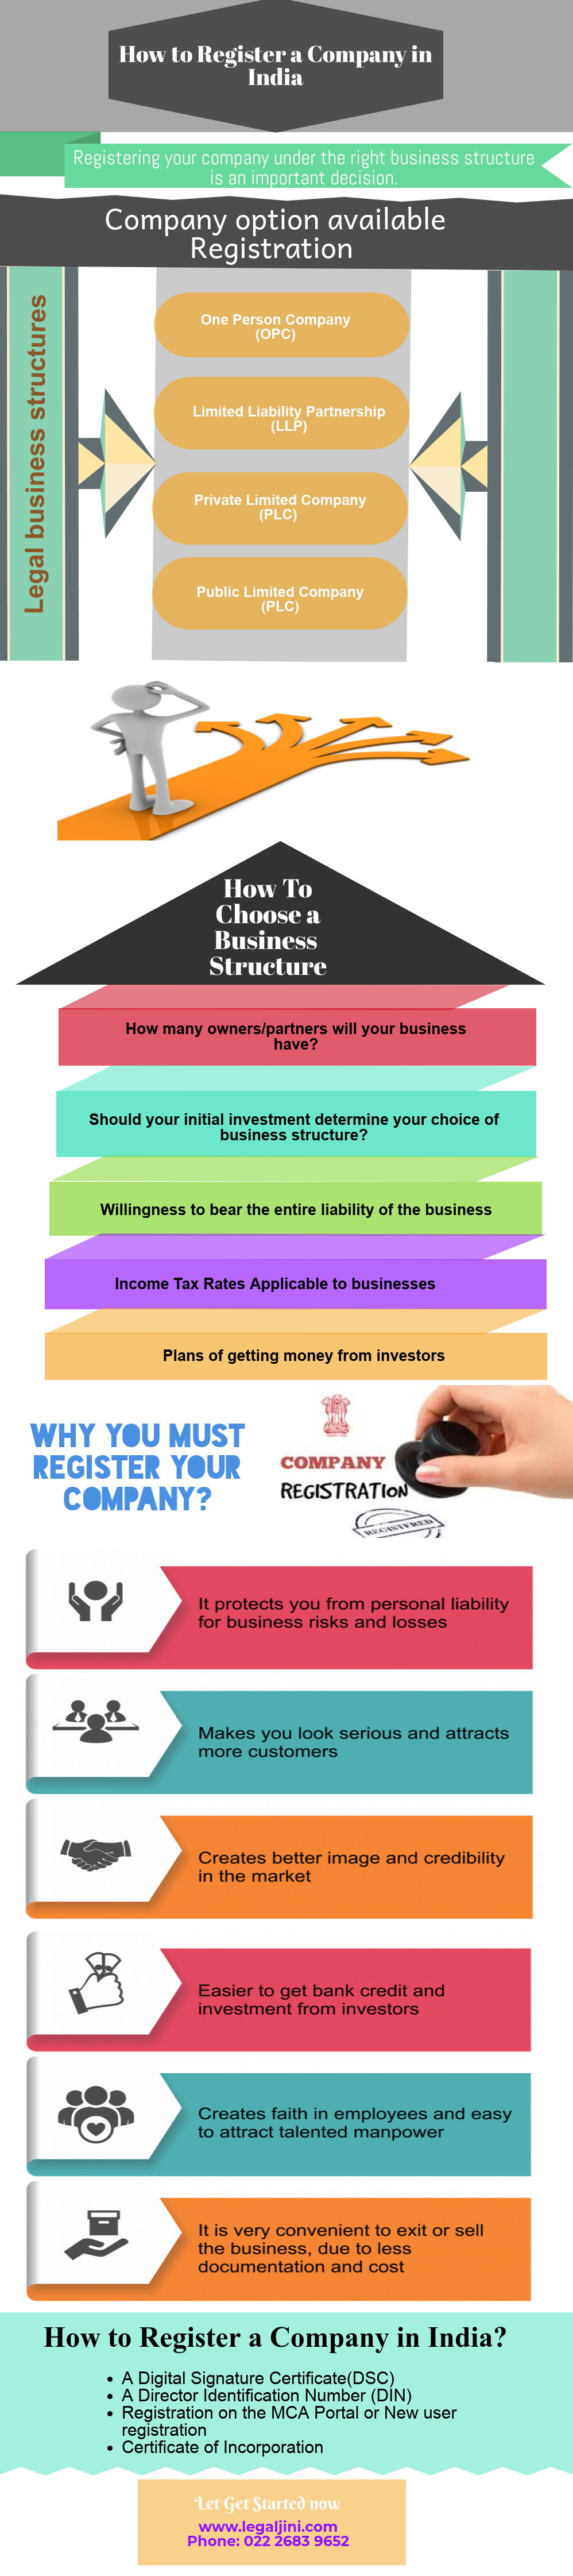 Applicability Of Ind As To Private Limited Companies